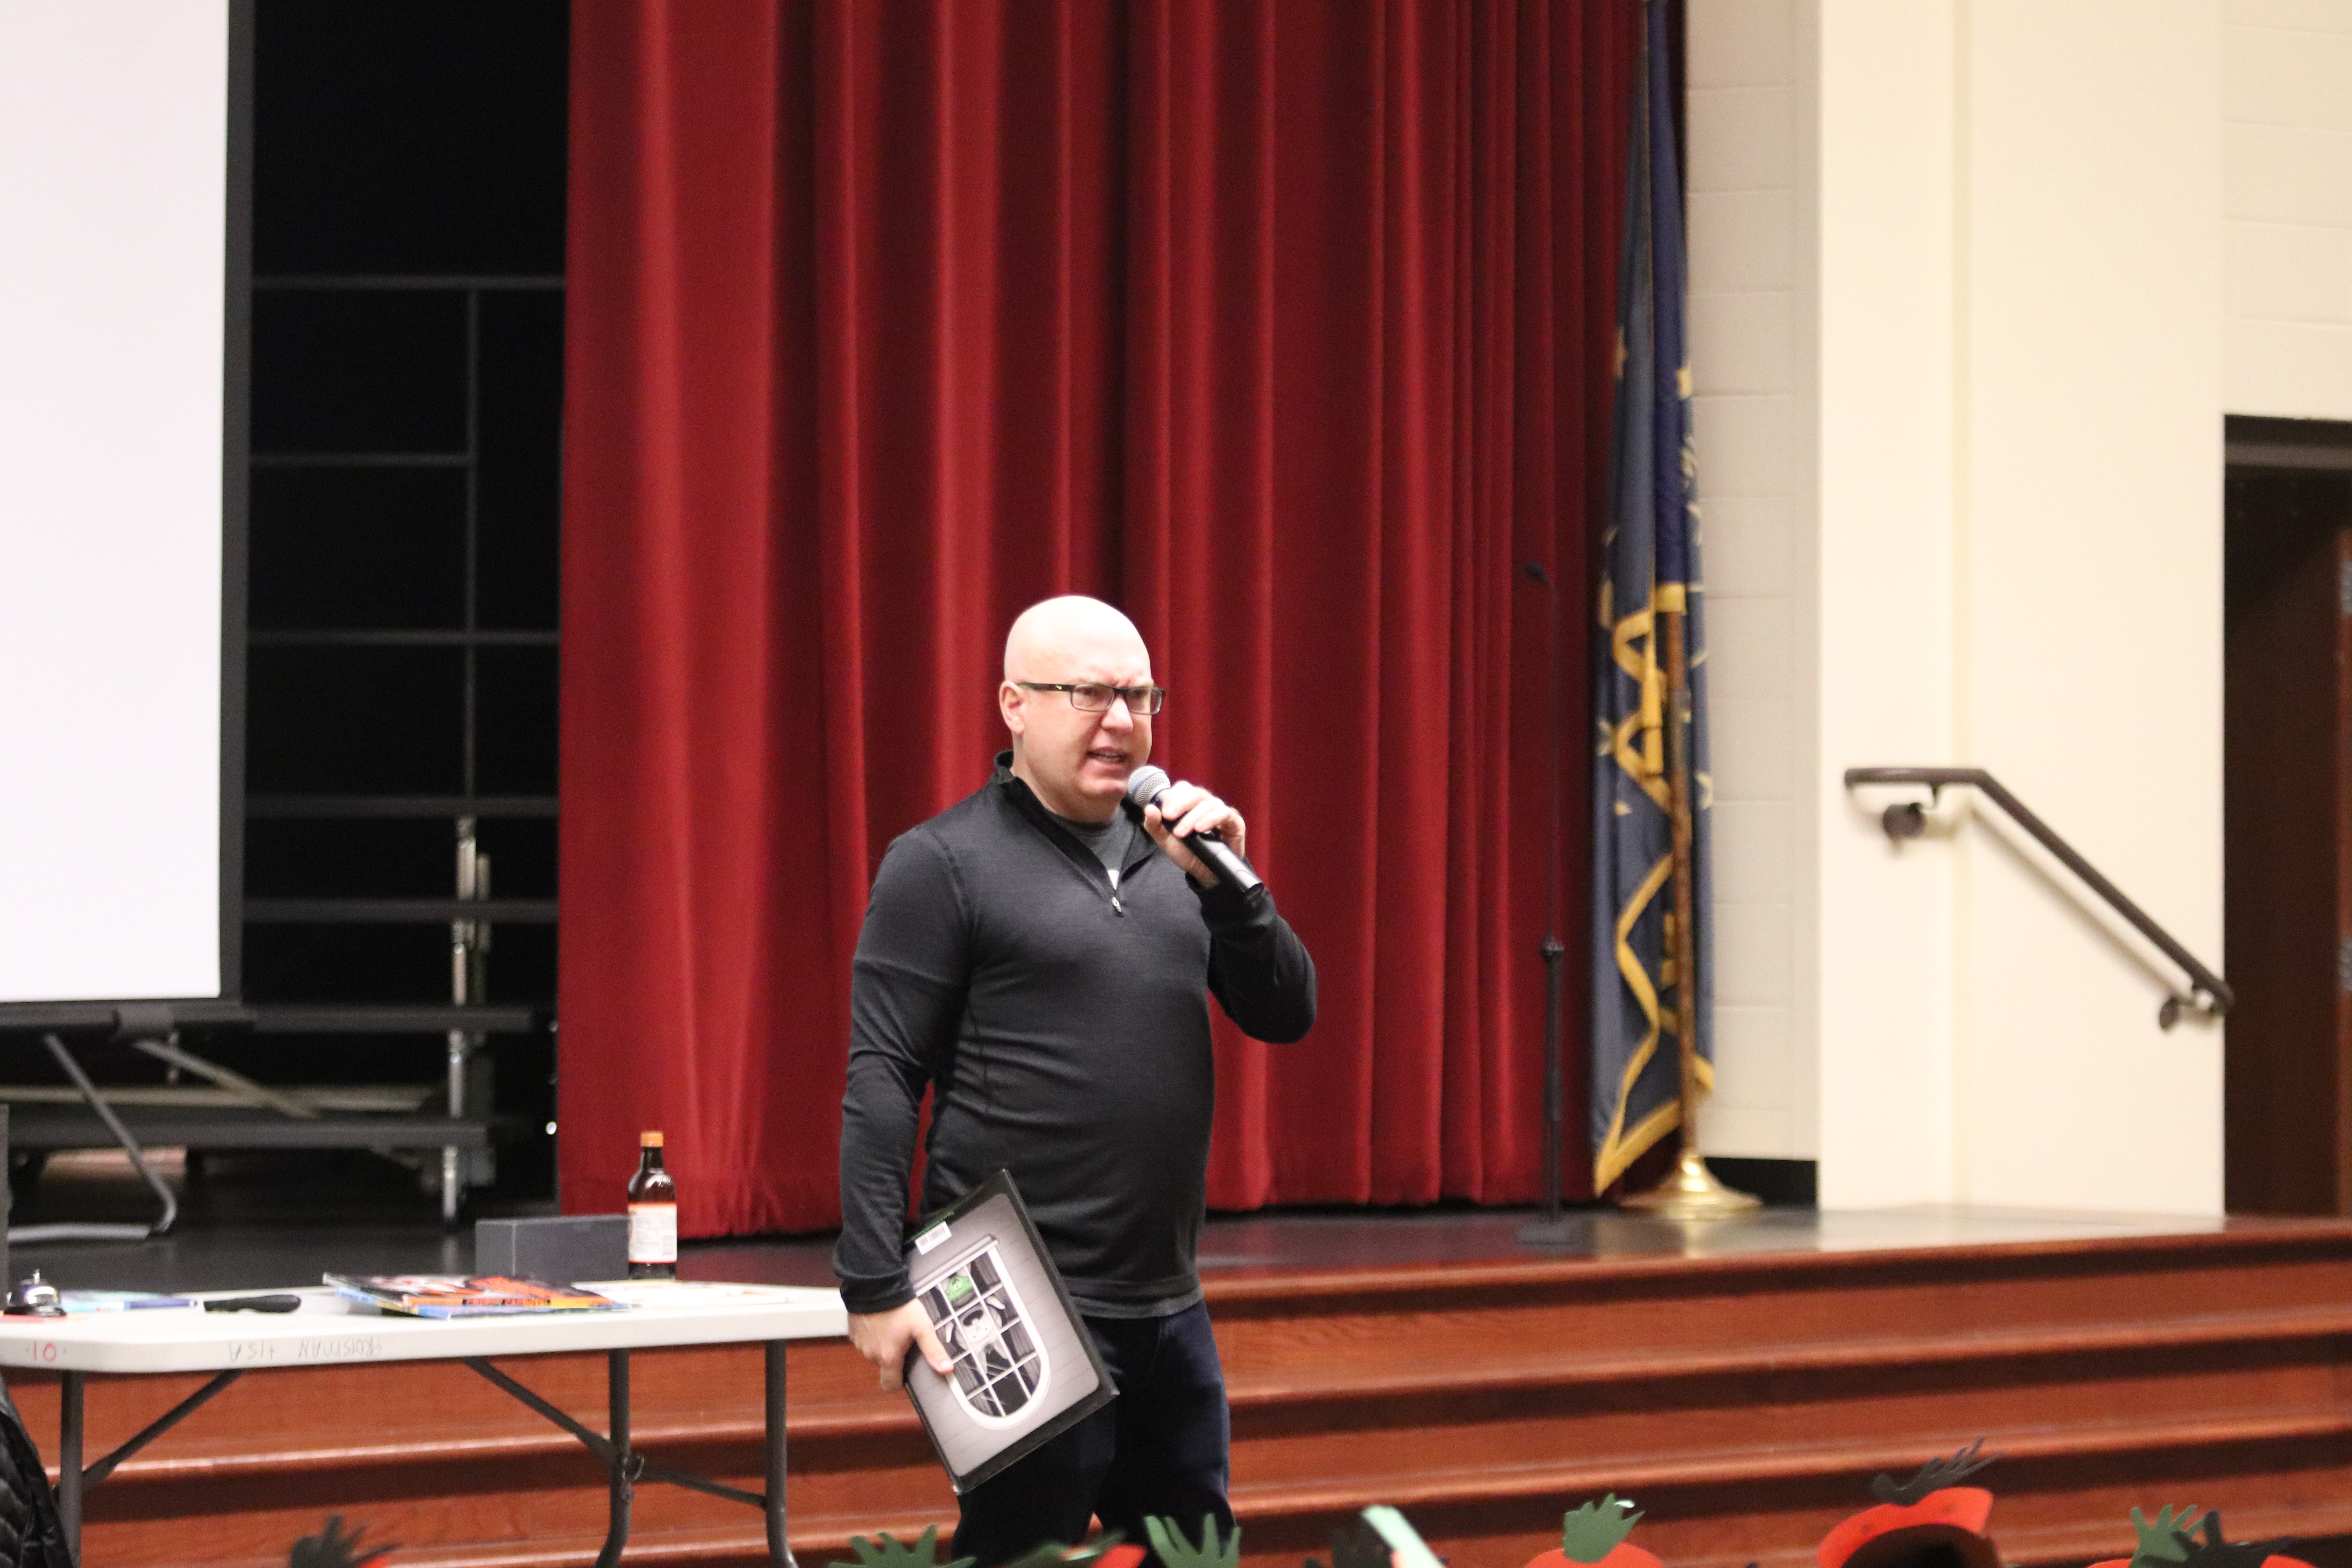 Author Aaron Reynolds visited Protsman